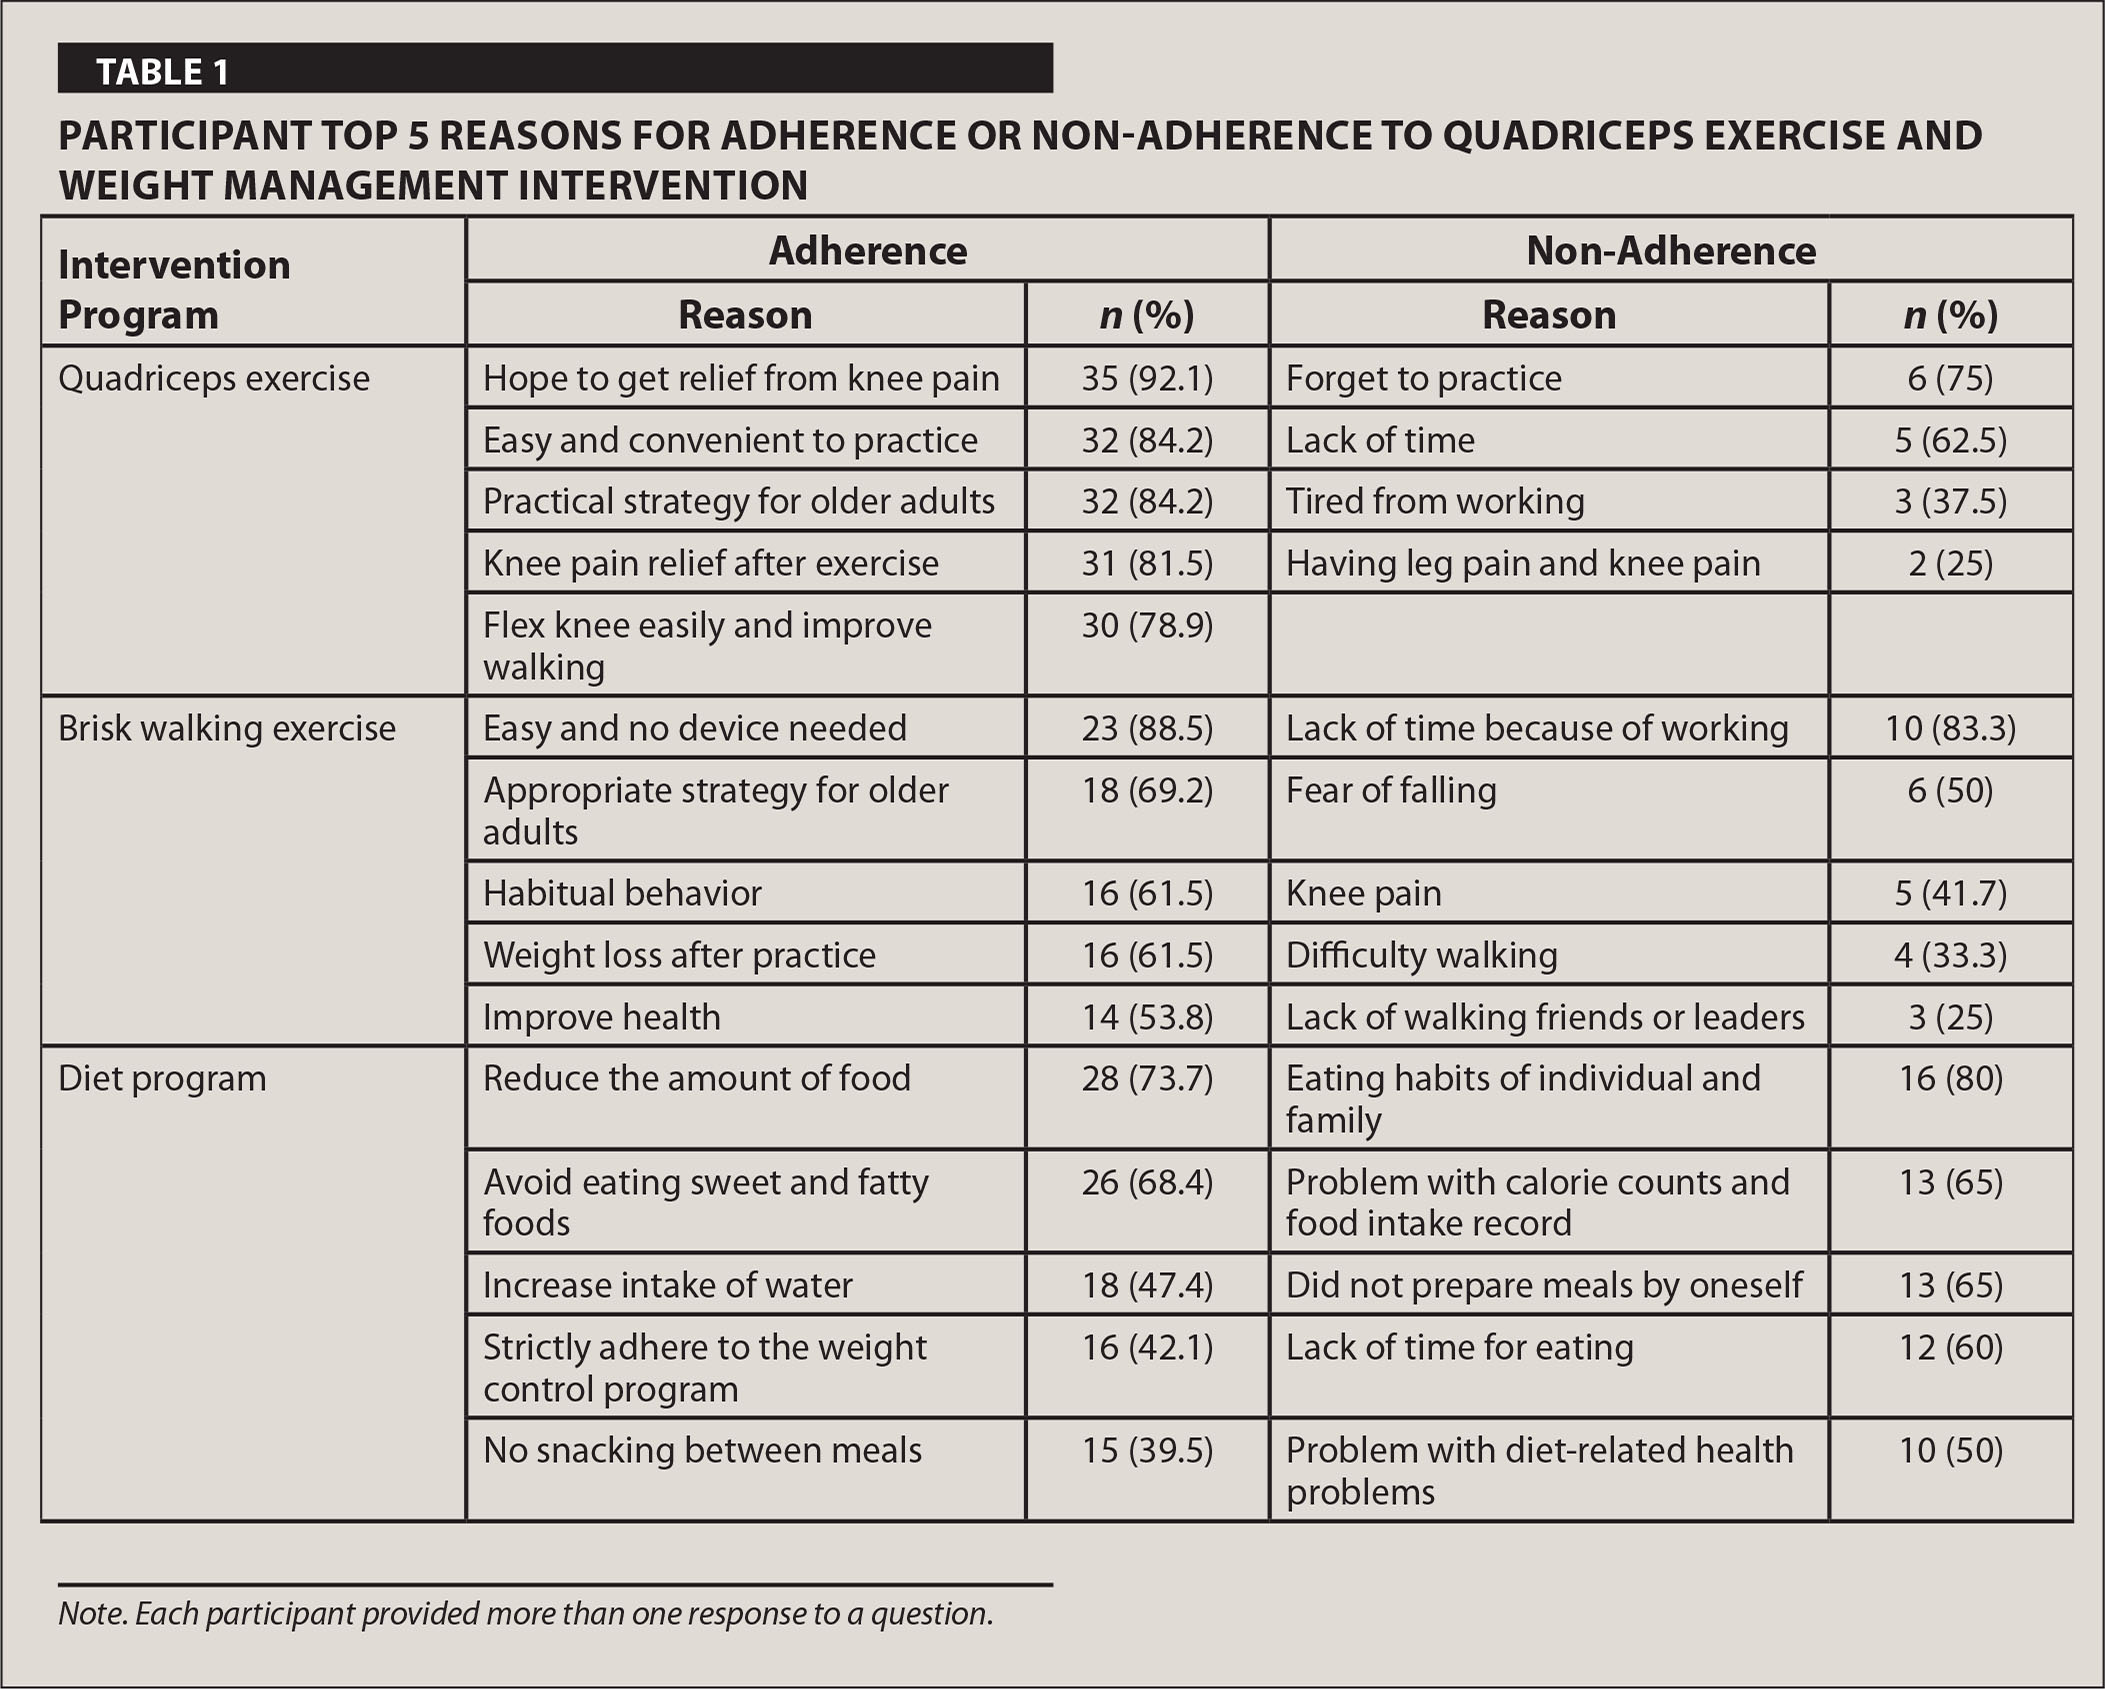 Participant Top 5 Reasons for Adherence or Non-Adherence to Quadriceps Exercise and Weight Management Intervention